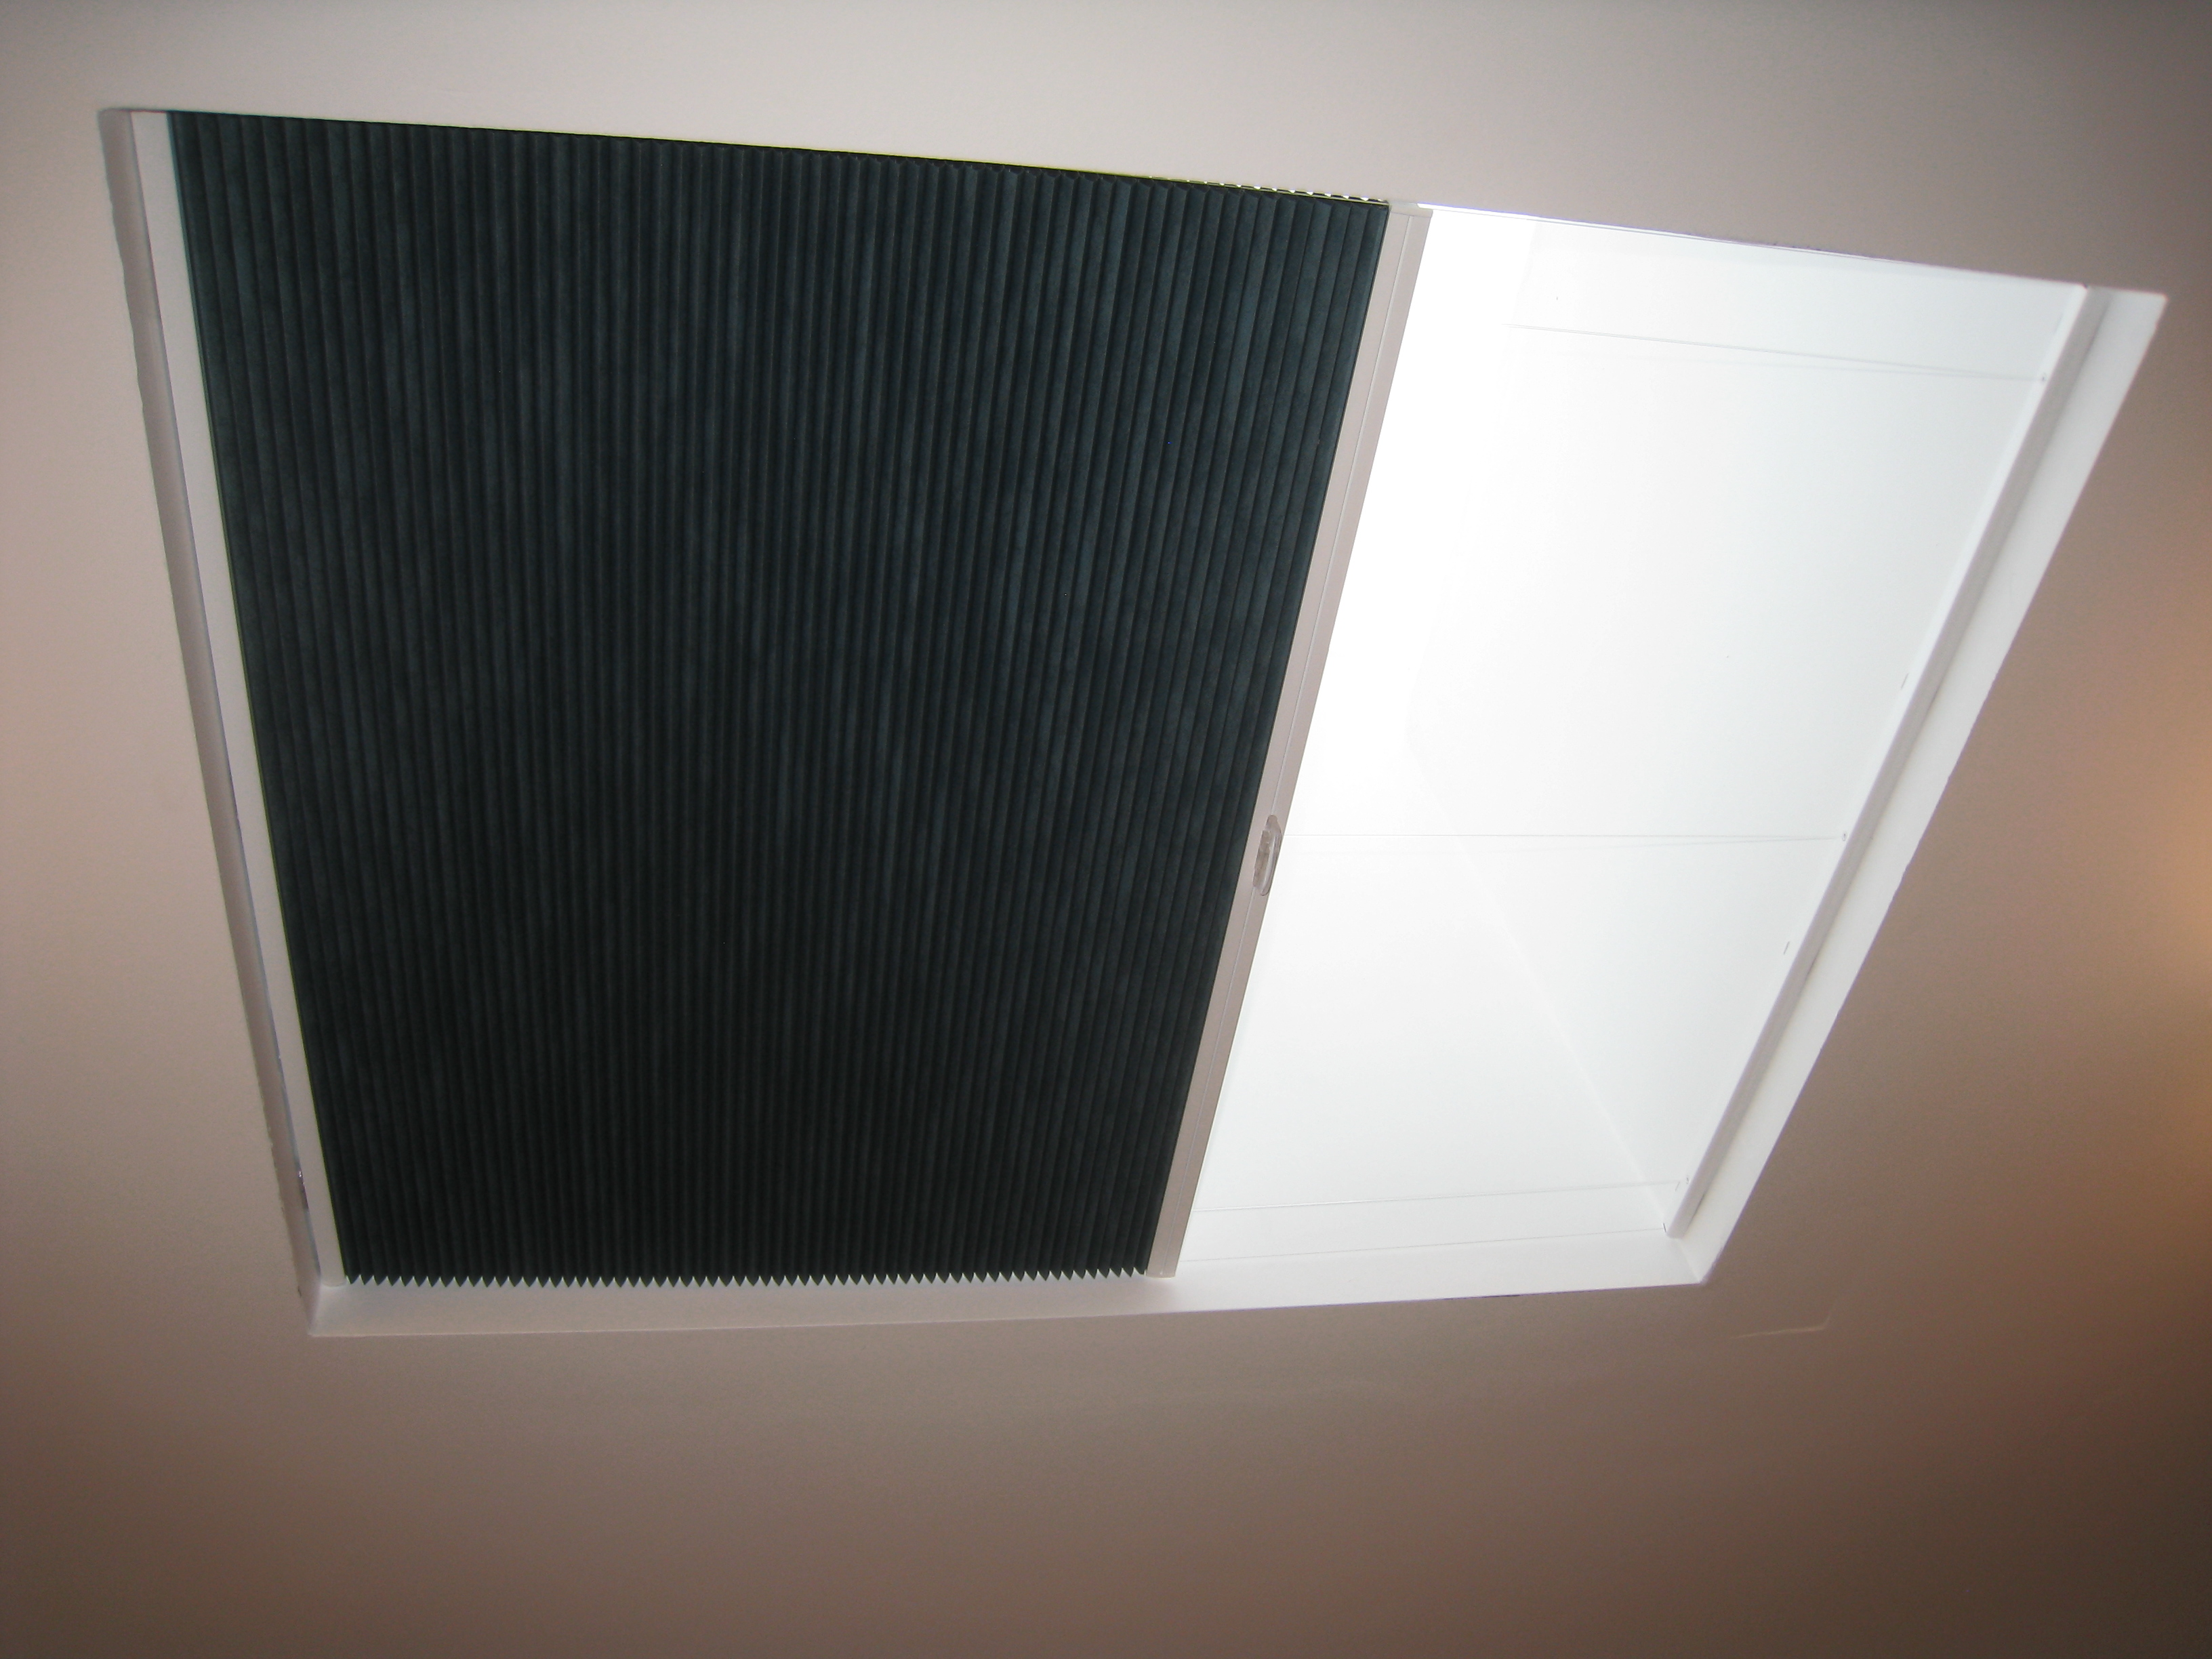 Duette Blackout Pleated Blinds For Skylight And Window